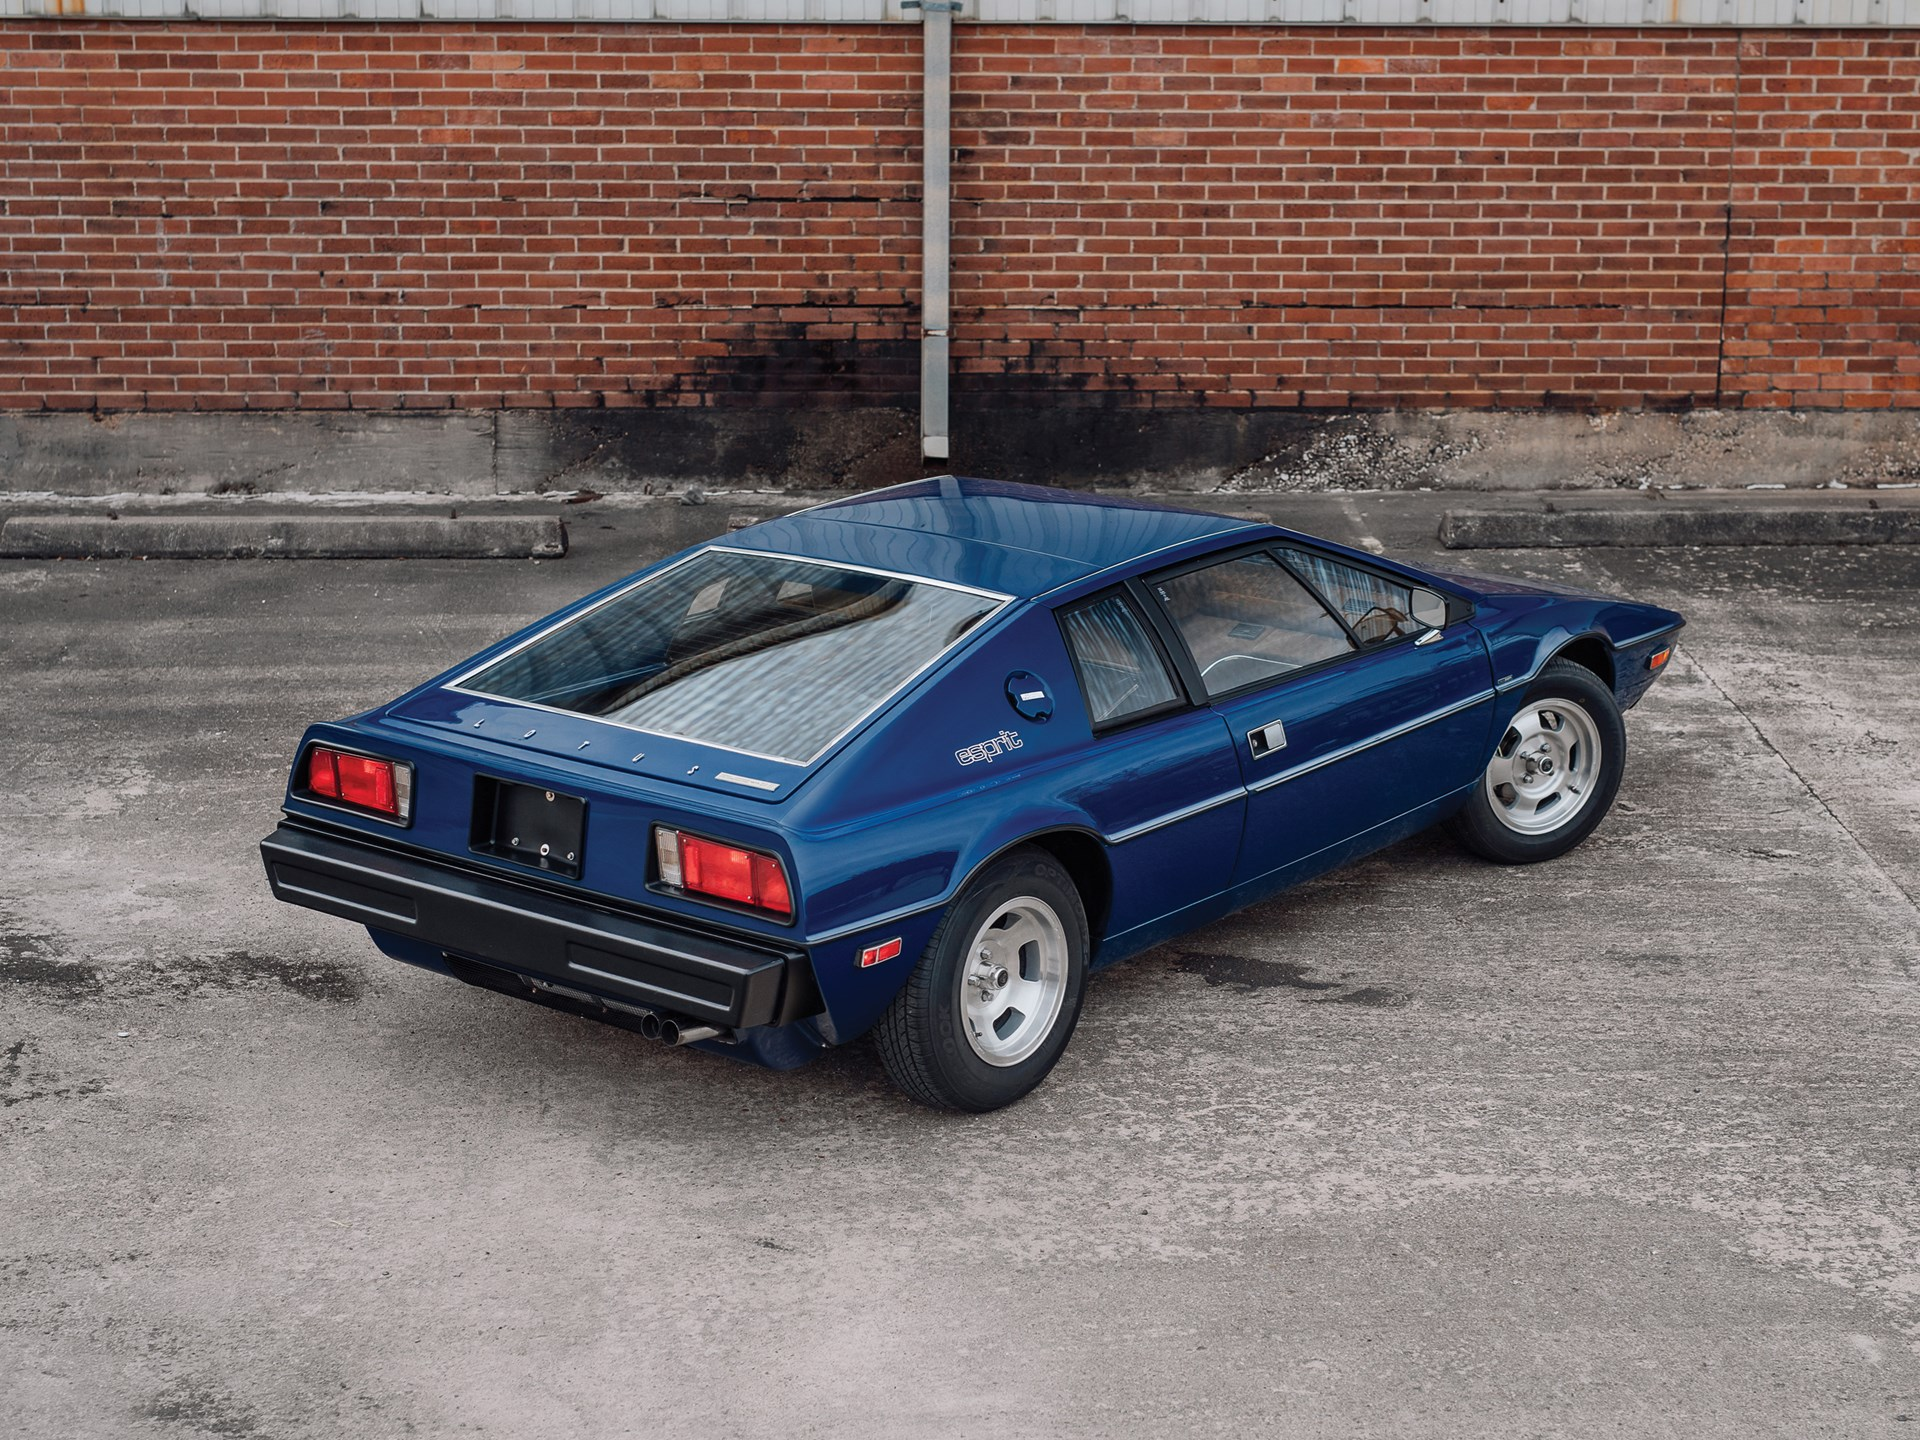 1977 Lotus Esprit Series 1 3/4 rear